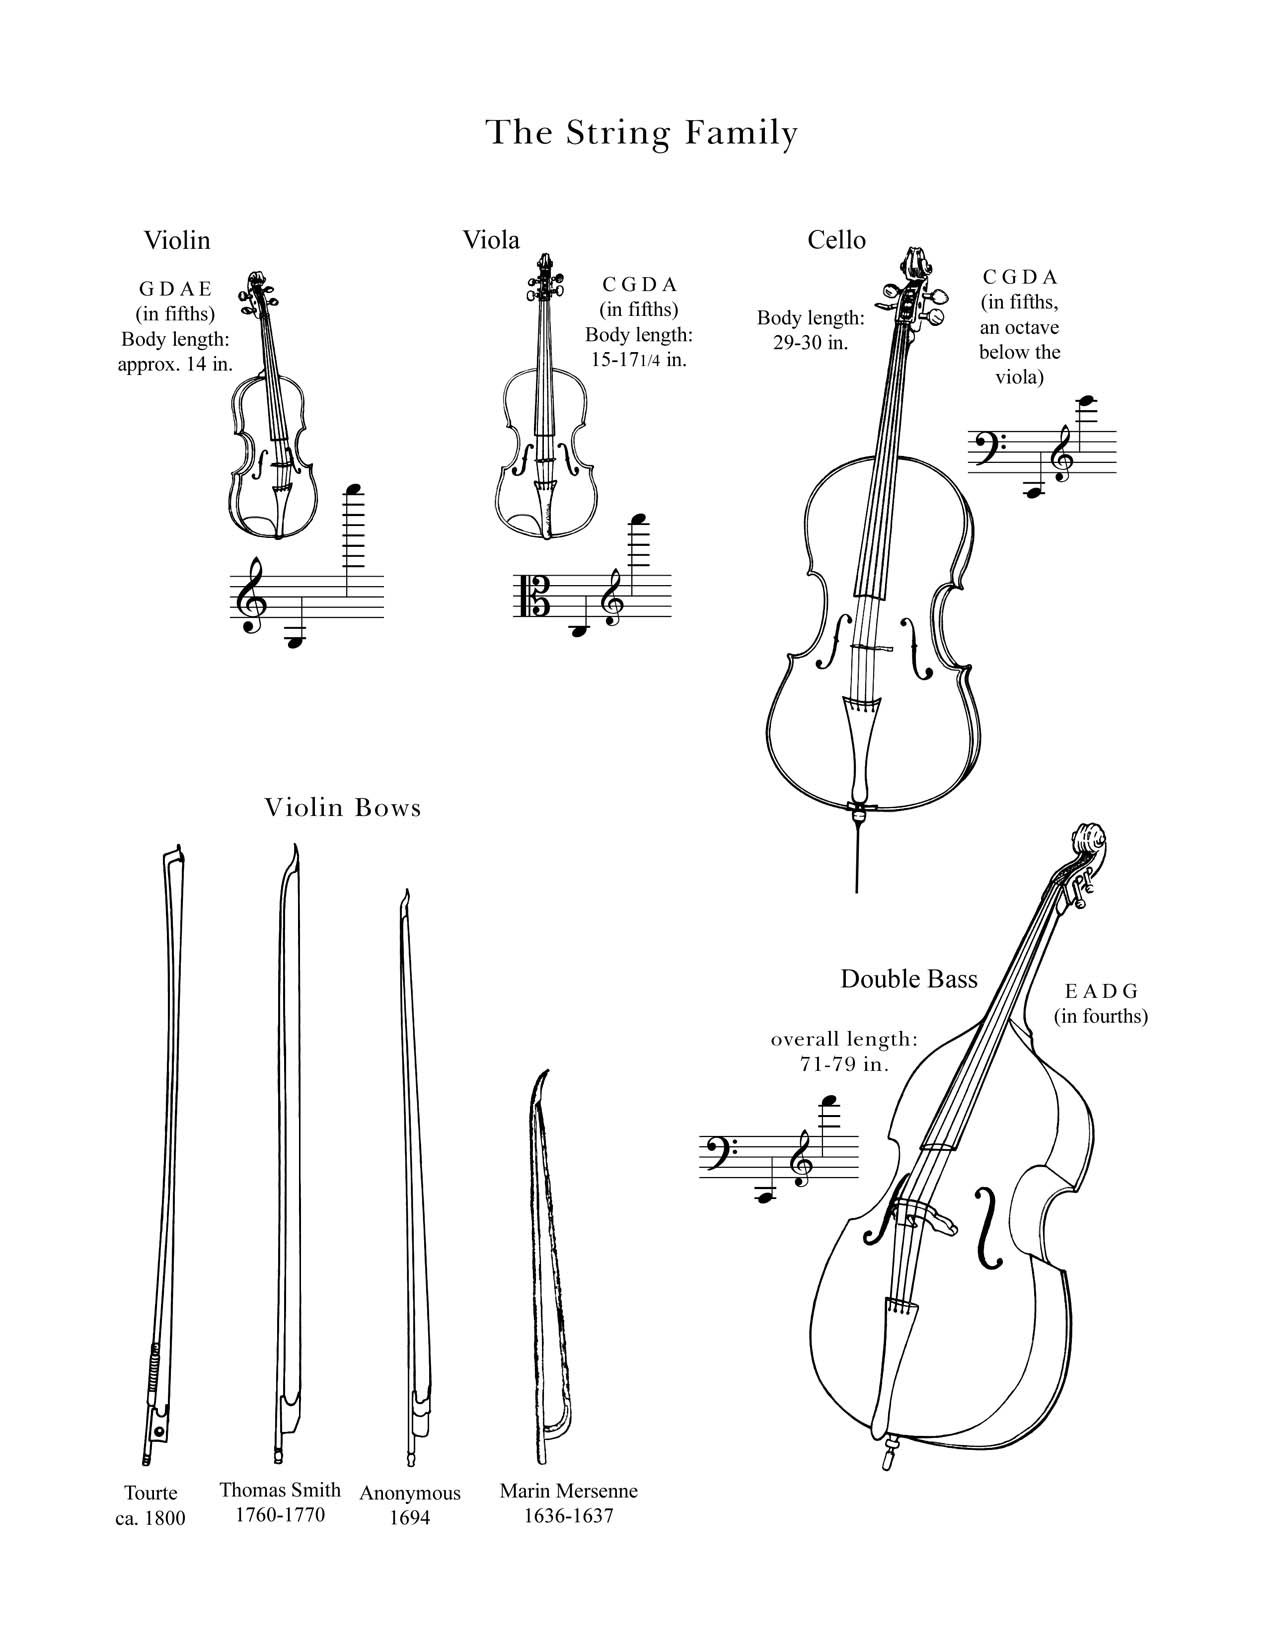 The String Family Drawings Of Instruments In The